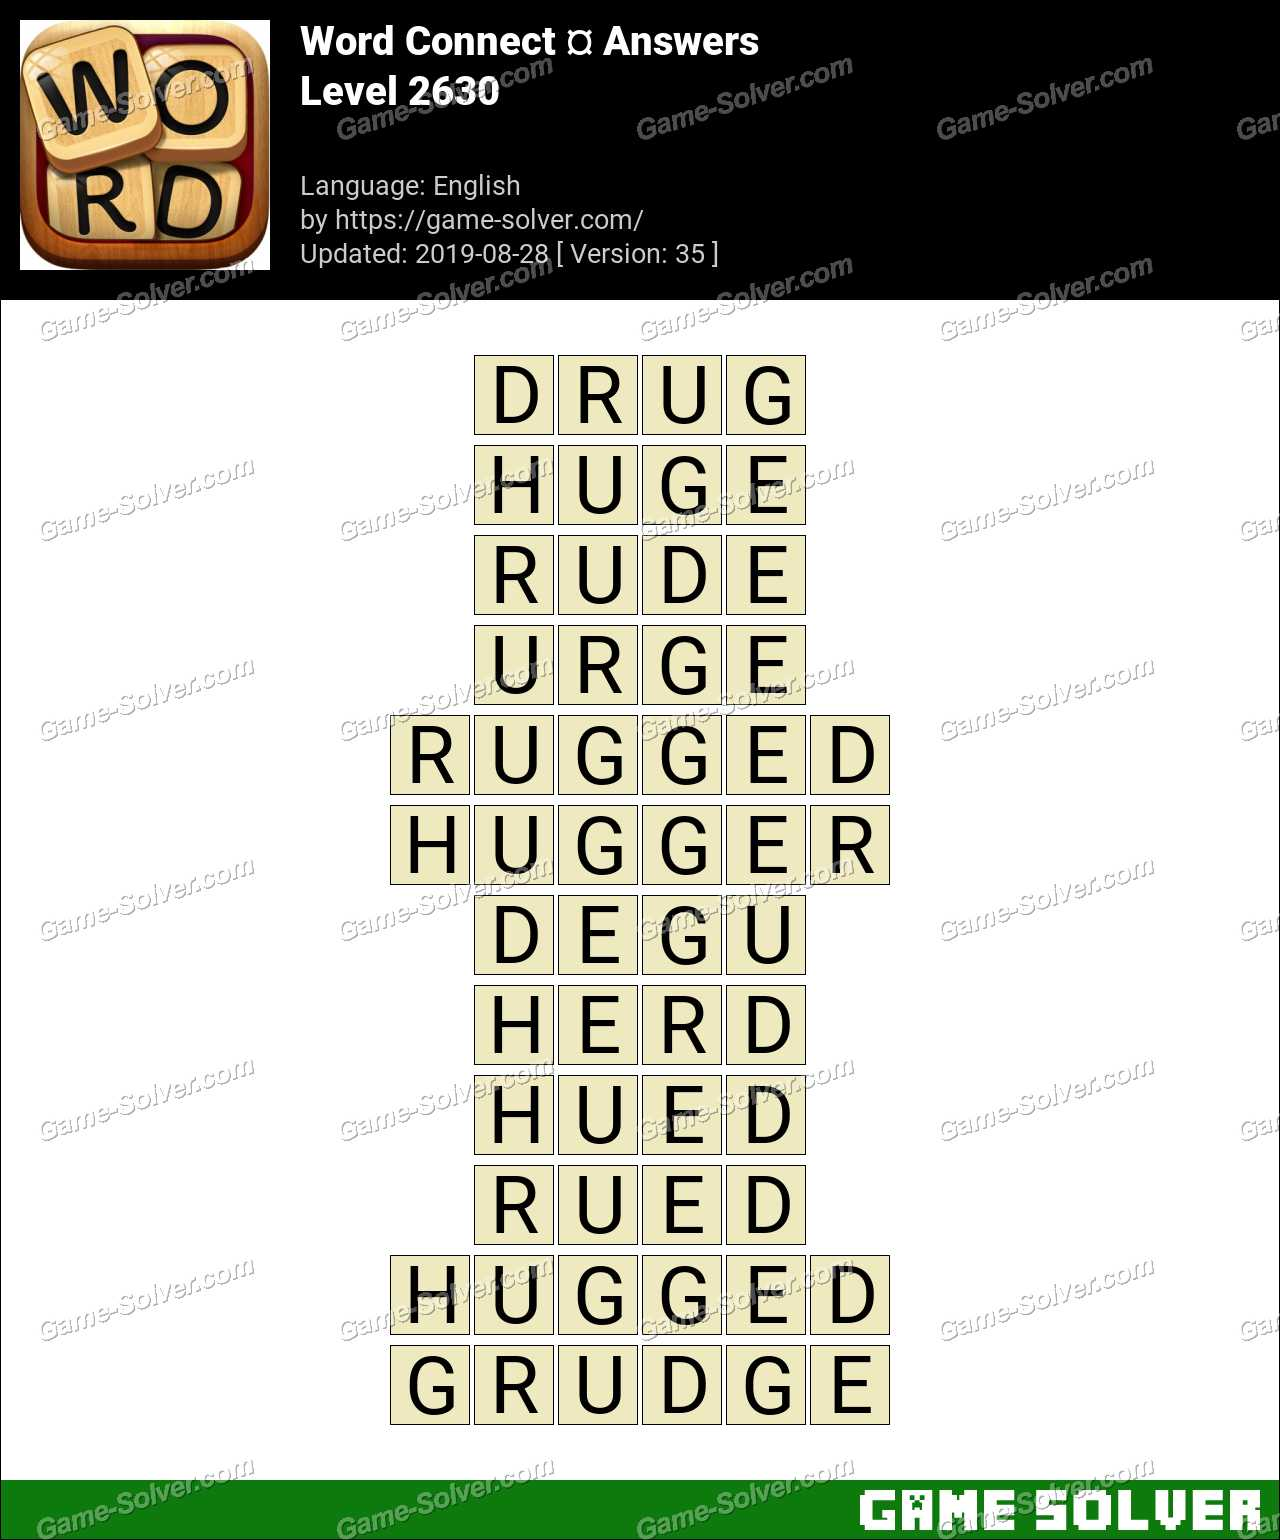 Word Connect Level 2630 Answers